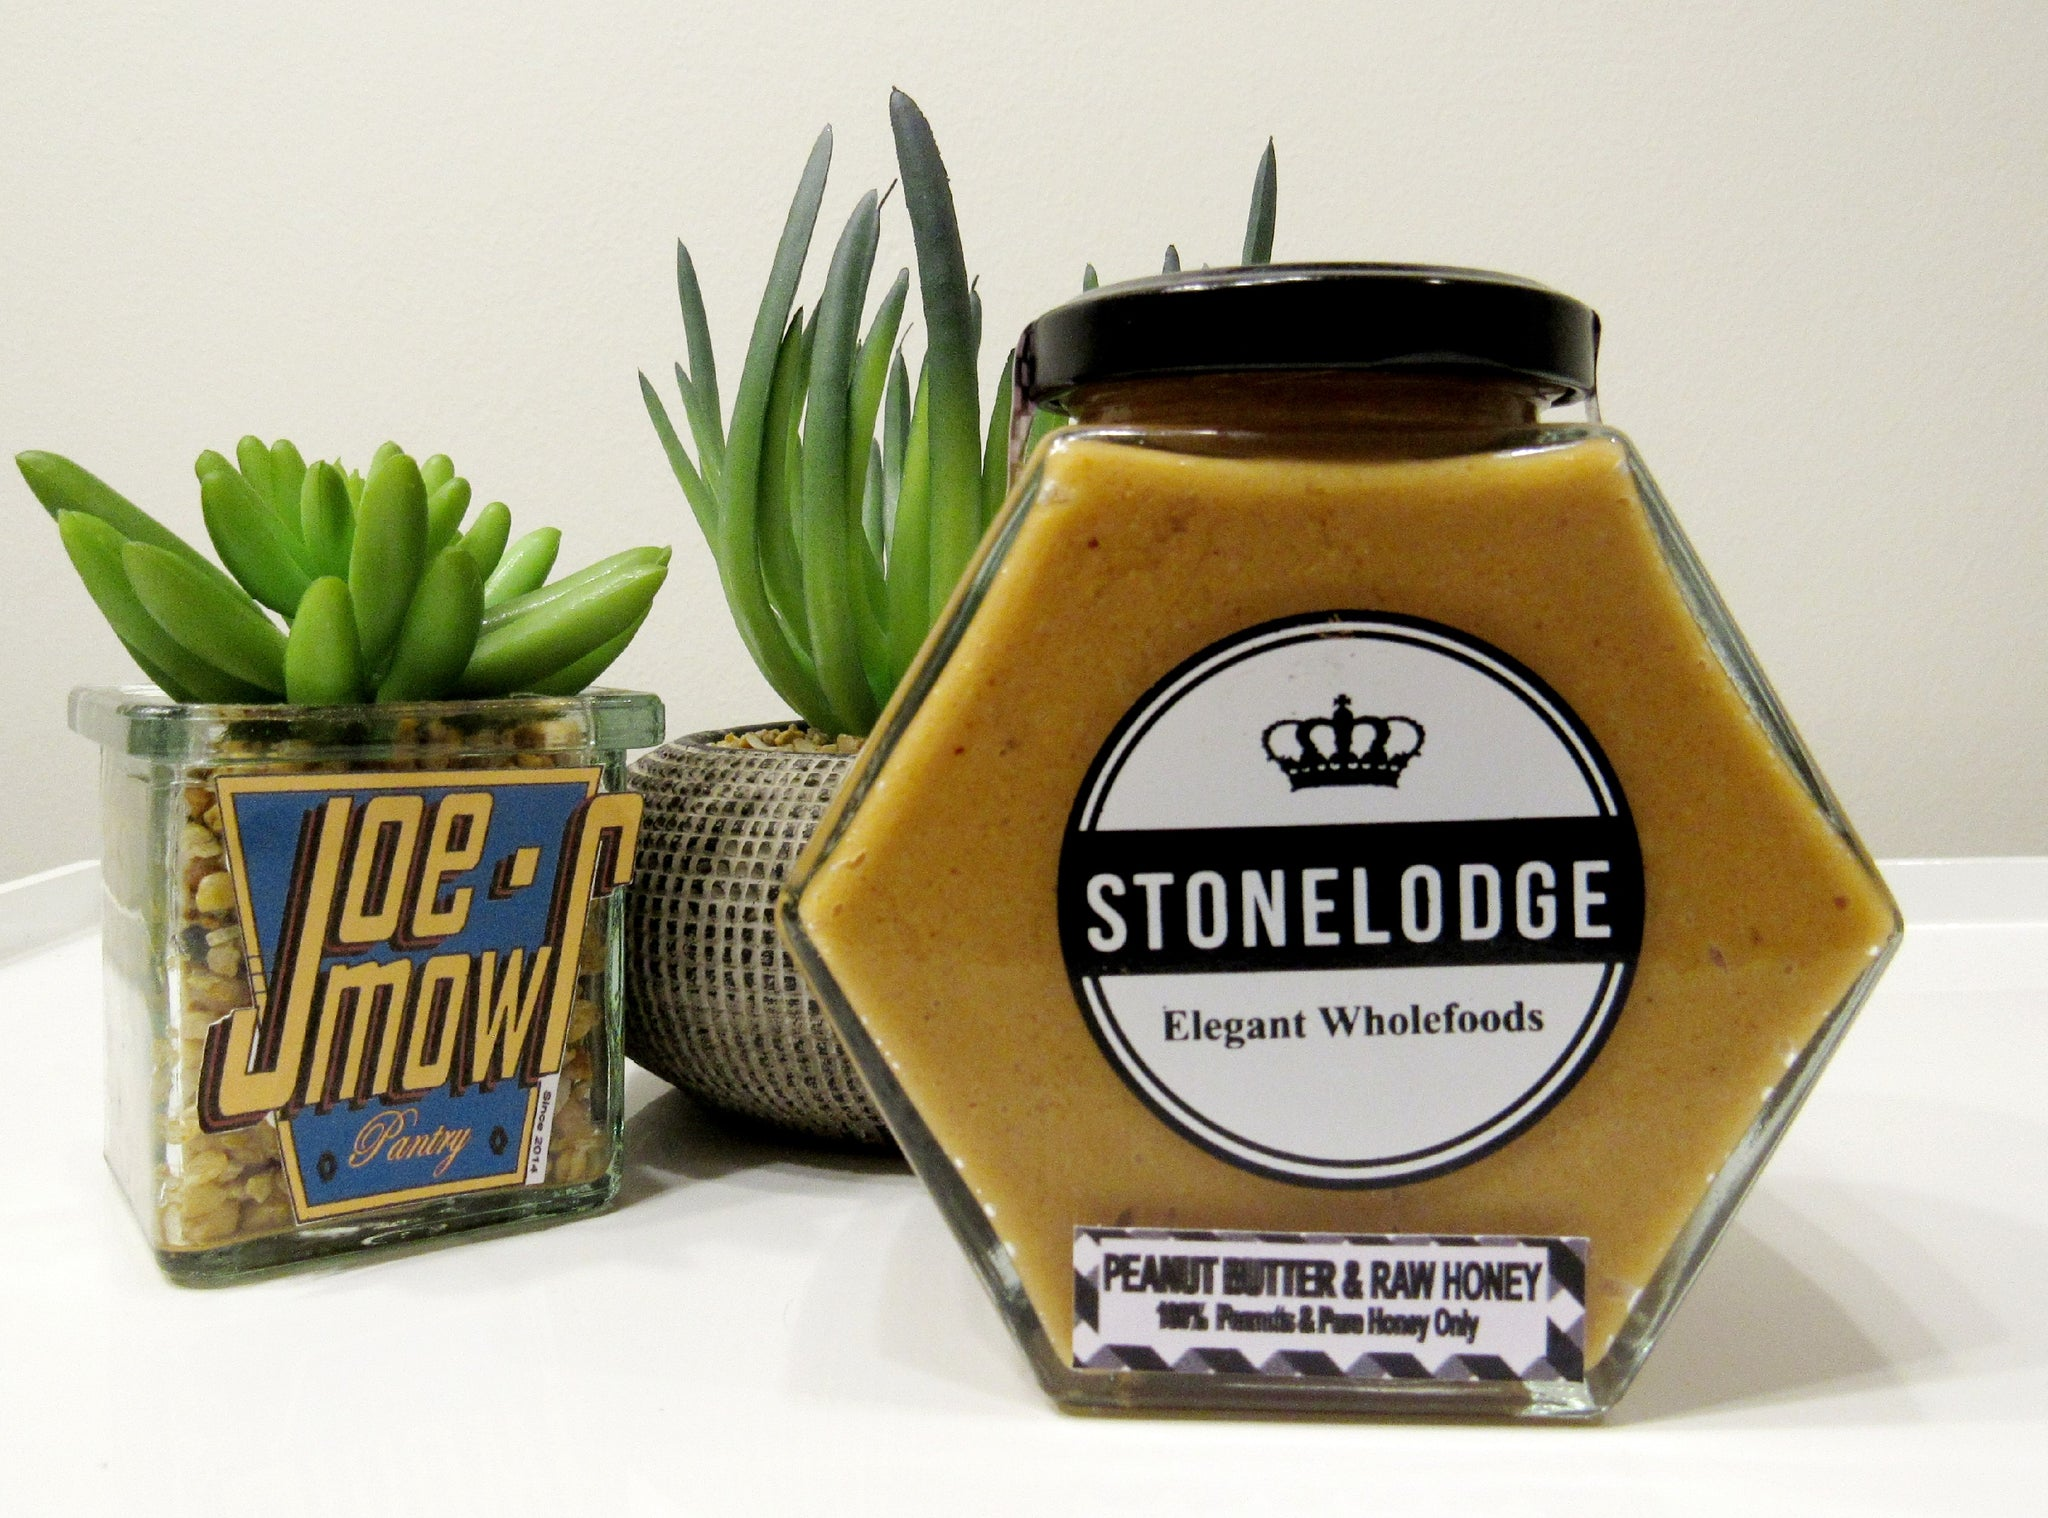 Stonelodge Peanut Butter & Raw Honey 325g